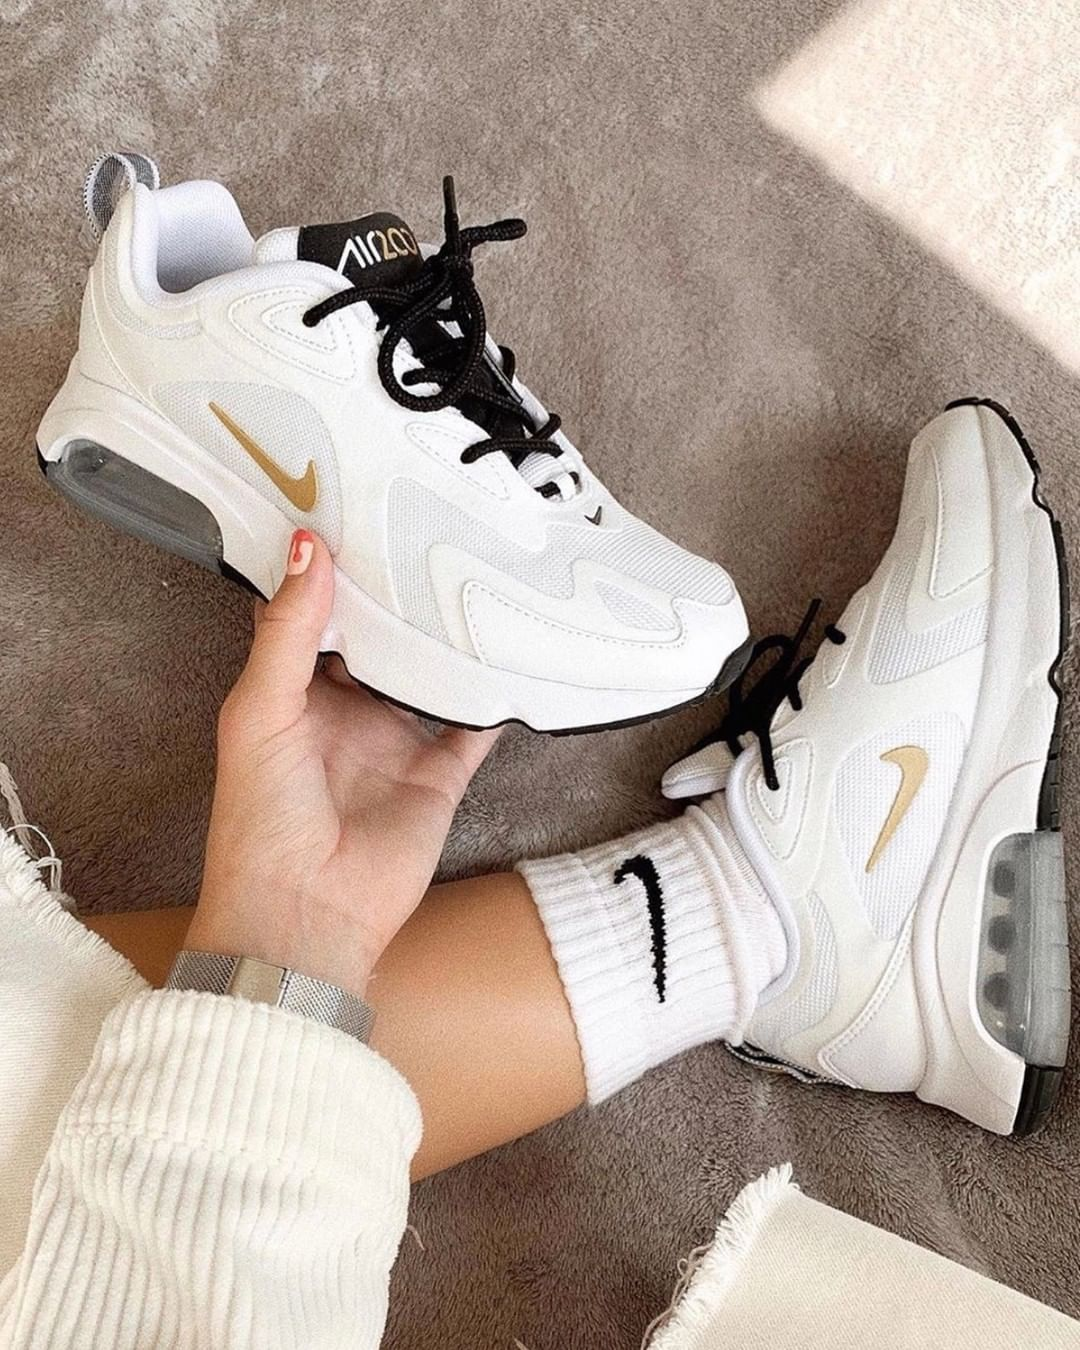 Pin by Ava Mcdonald on shoes in 2020 | Air max sneakers